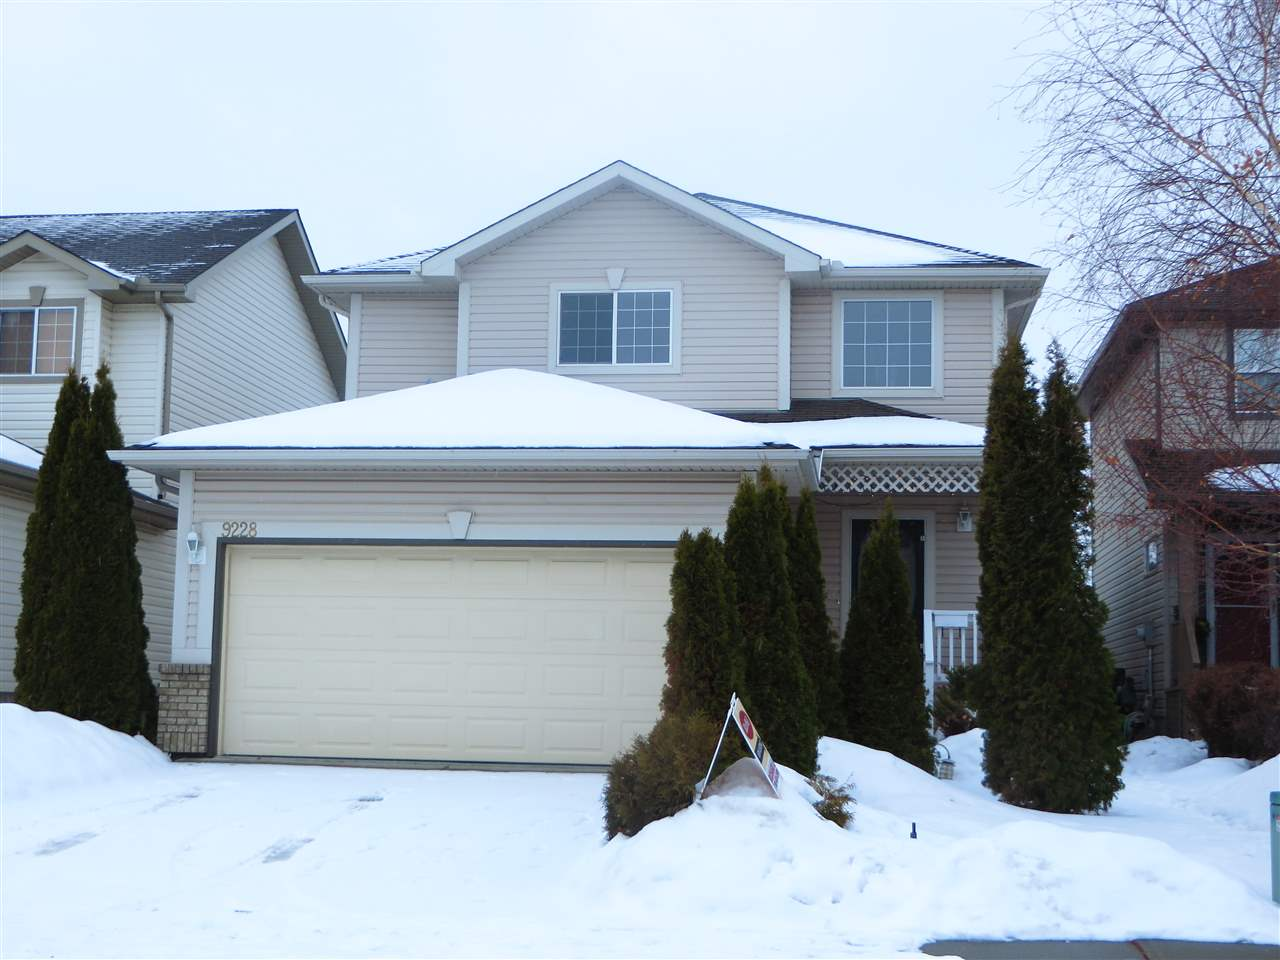 MLS® listing #E4143640 for sale located at 9228 164 Avenue